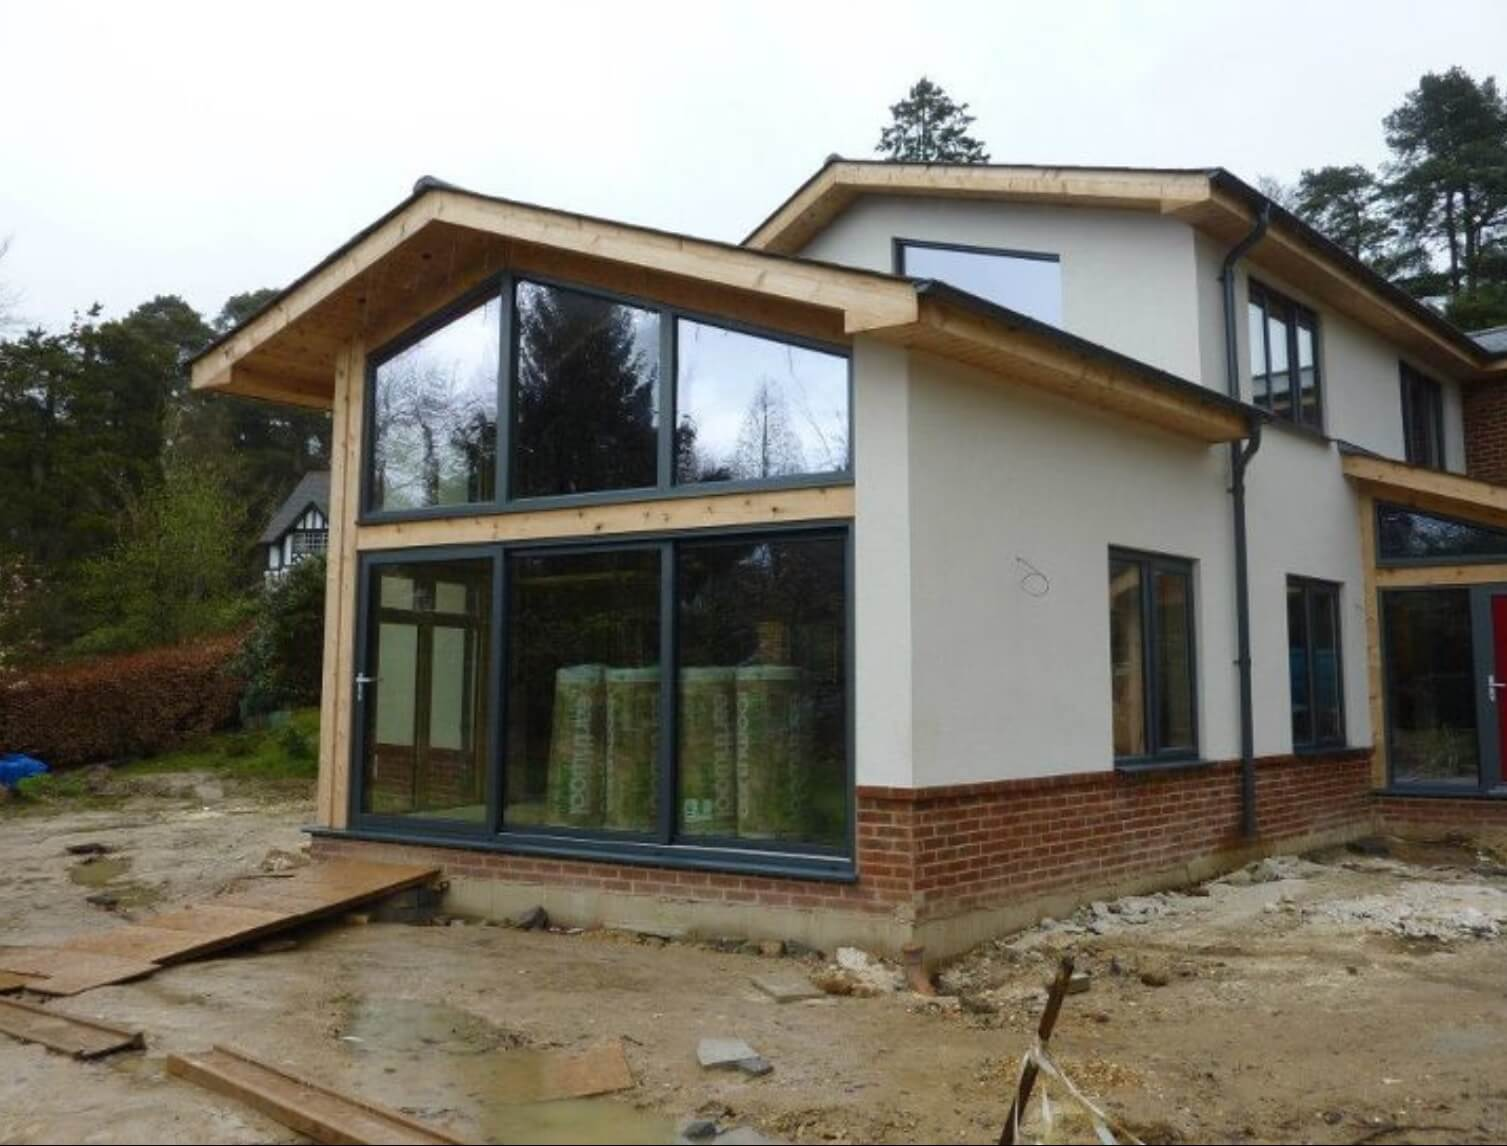 Poundgate 4 bedroom house design solo timber frame for Modern house designs uk